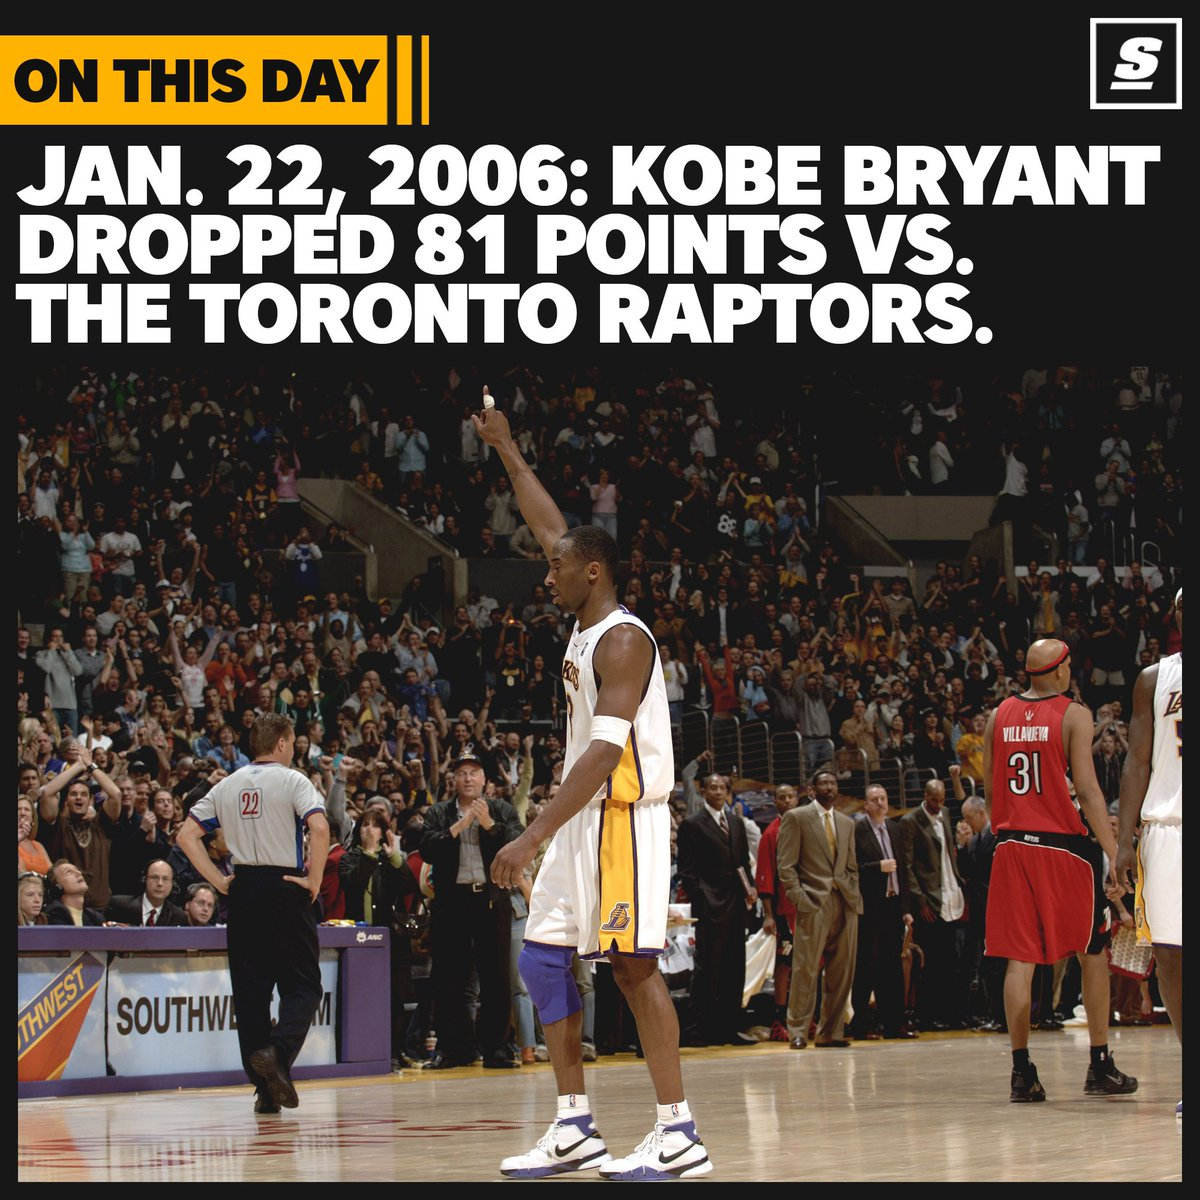 On this date in 2006...  Kobe Bryant torched the Raptors for 81 points. 🐍🔥